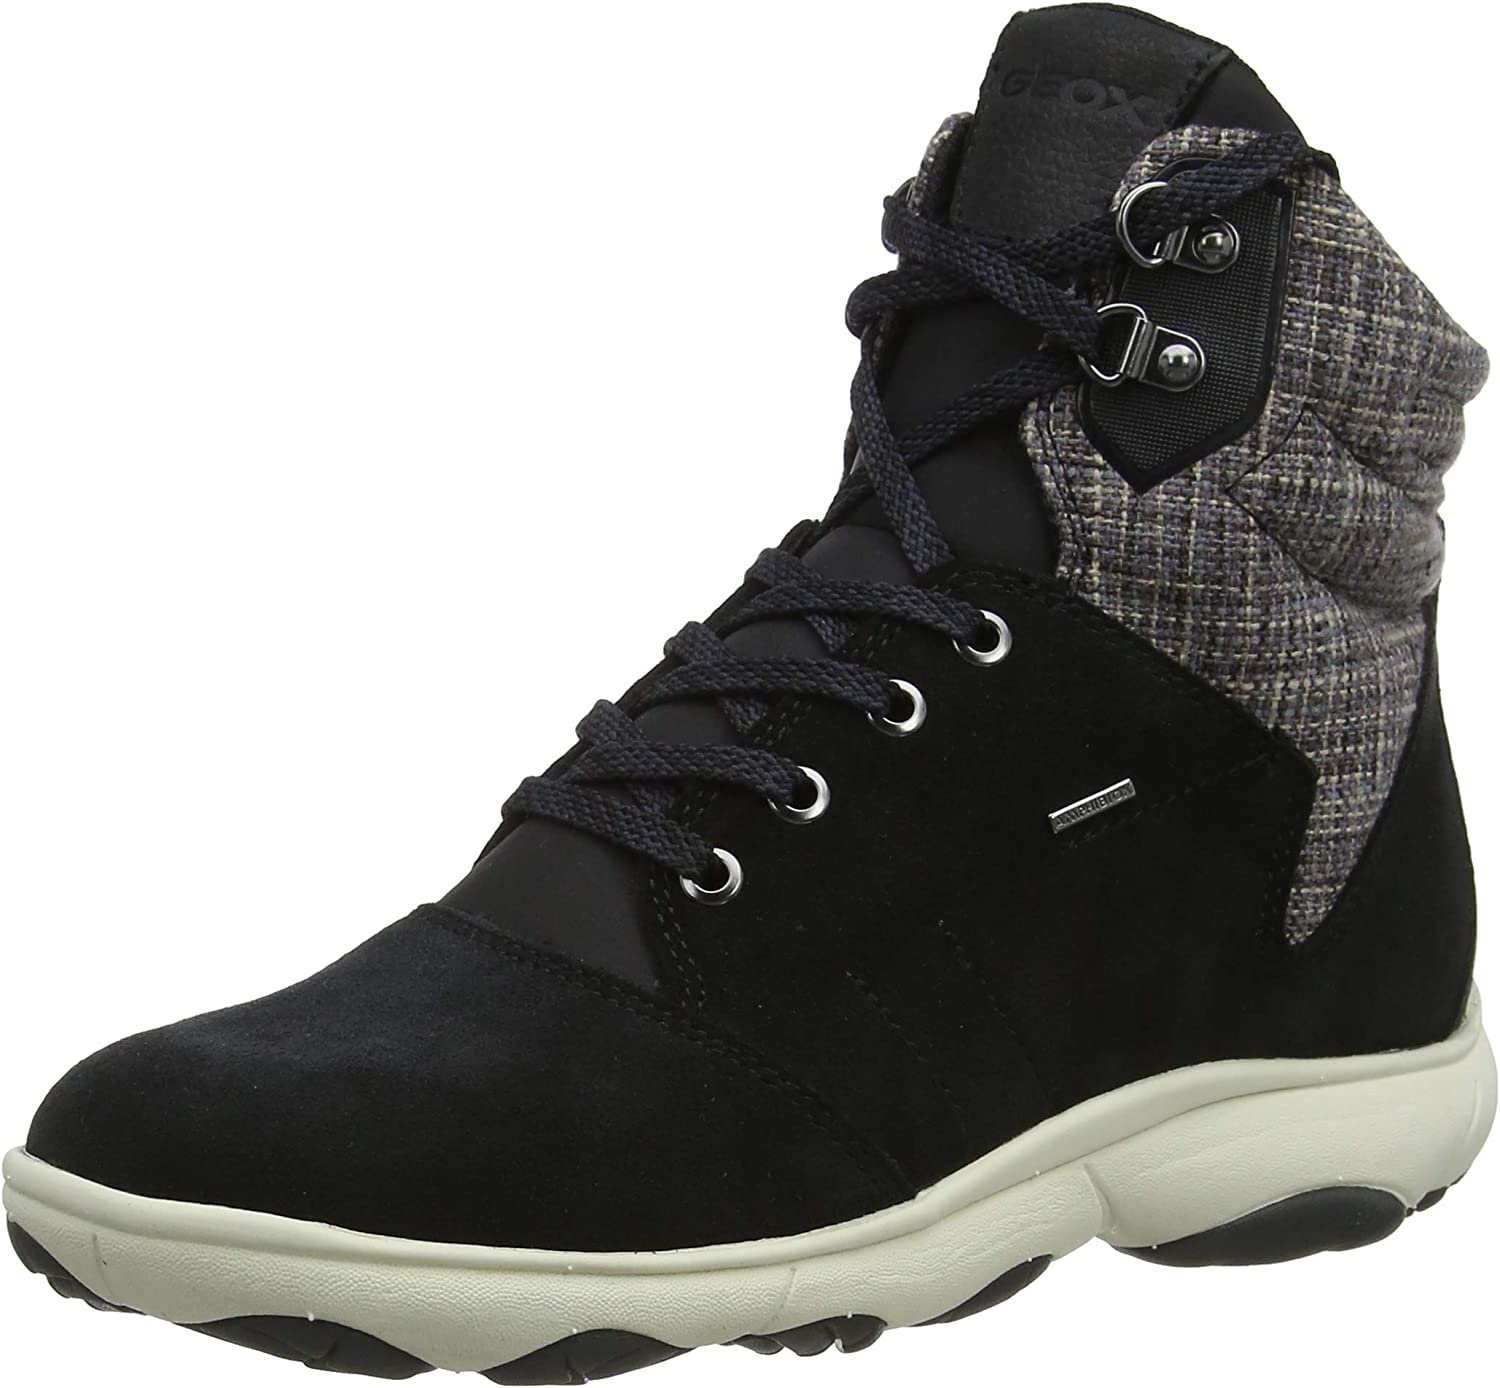 Geox Women's Outdoor Our shop OFFers the best service A surprise price is realized boots Sneakers chukka